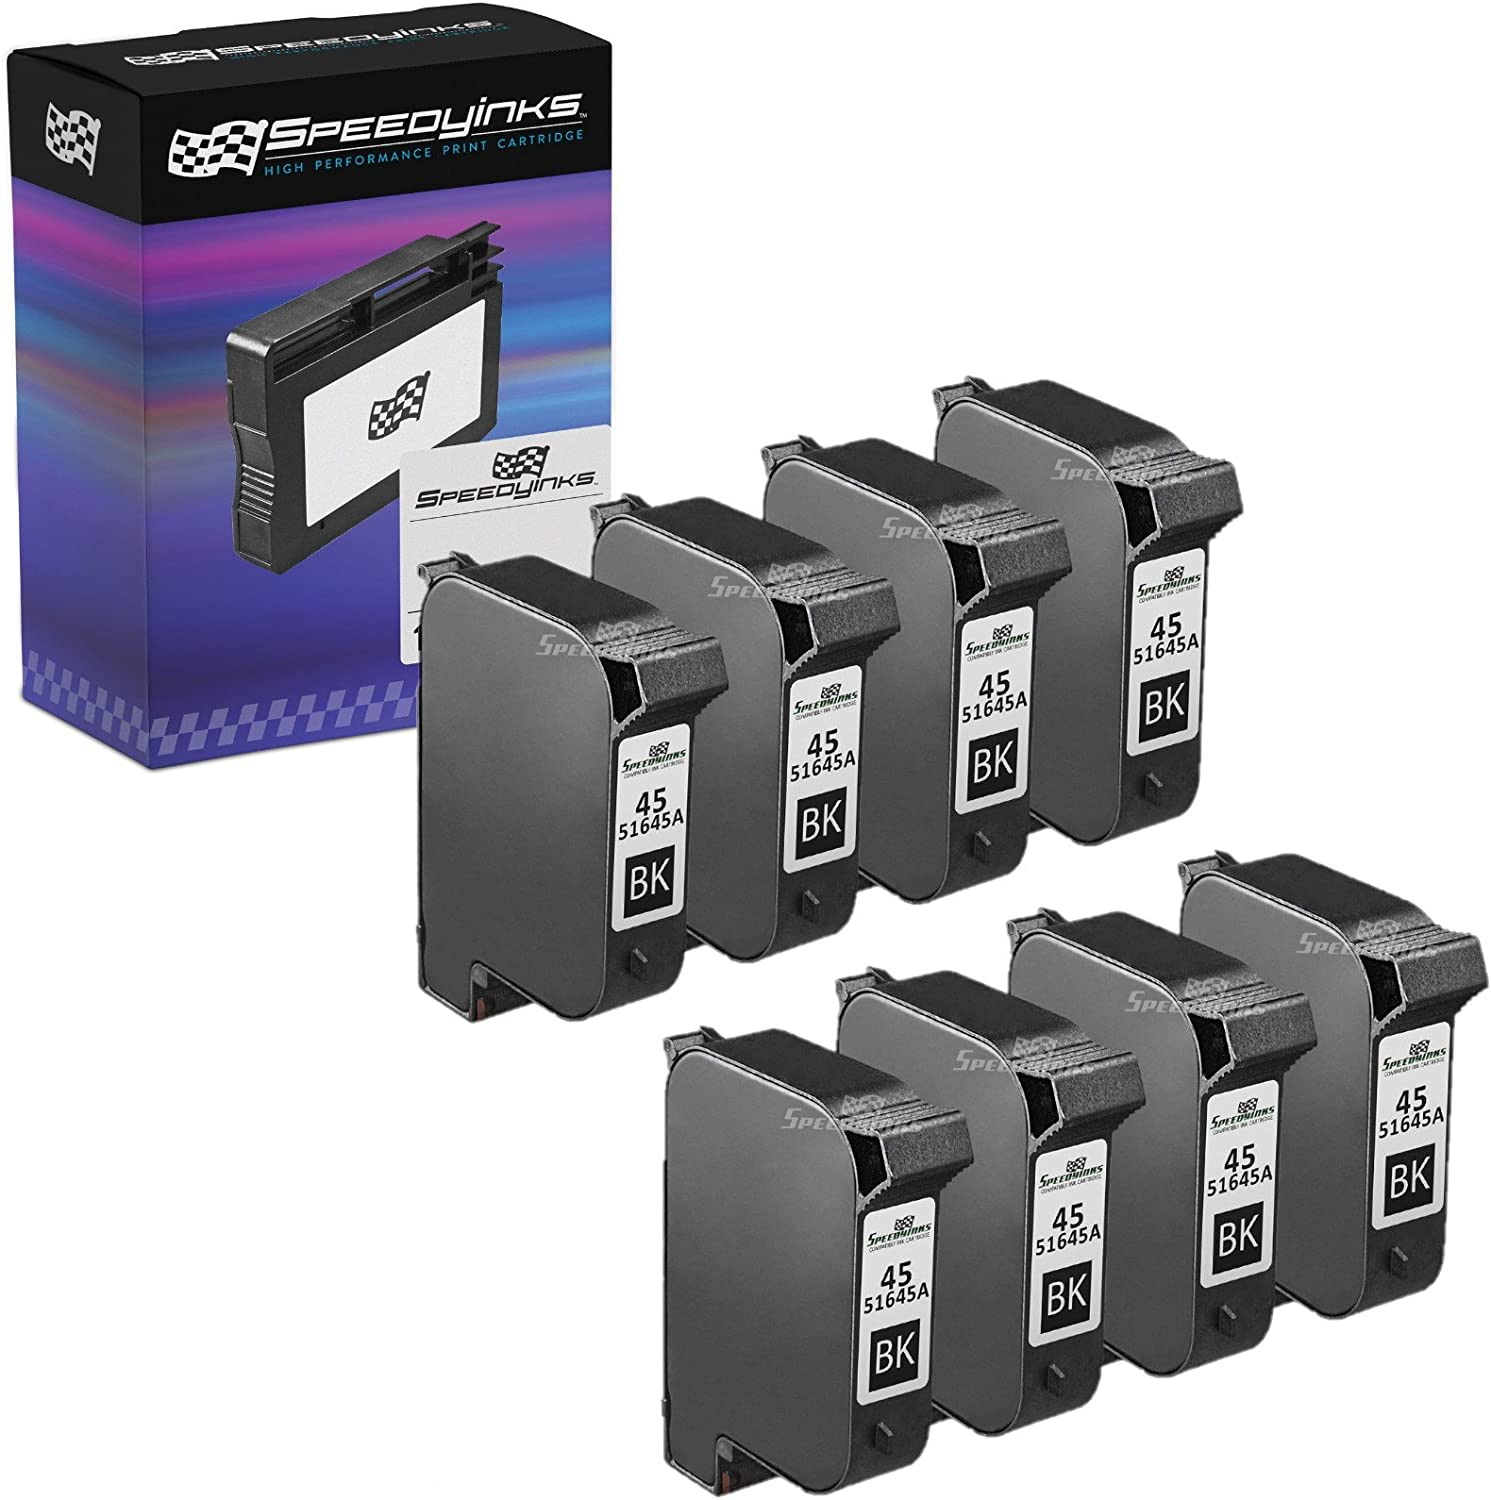 Speedy Inks Remanufactured Ink Cartridge Replacement for HP 45 5145A (Black, 8-Pack)